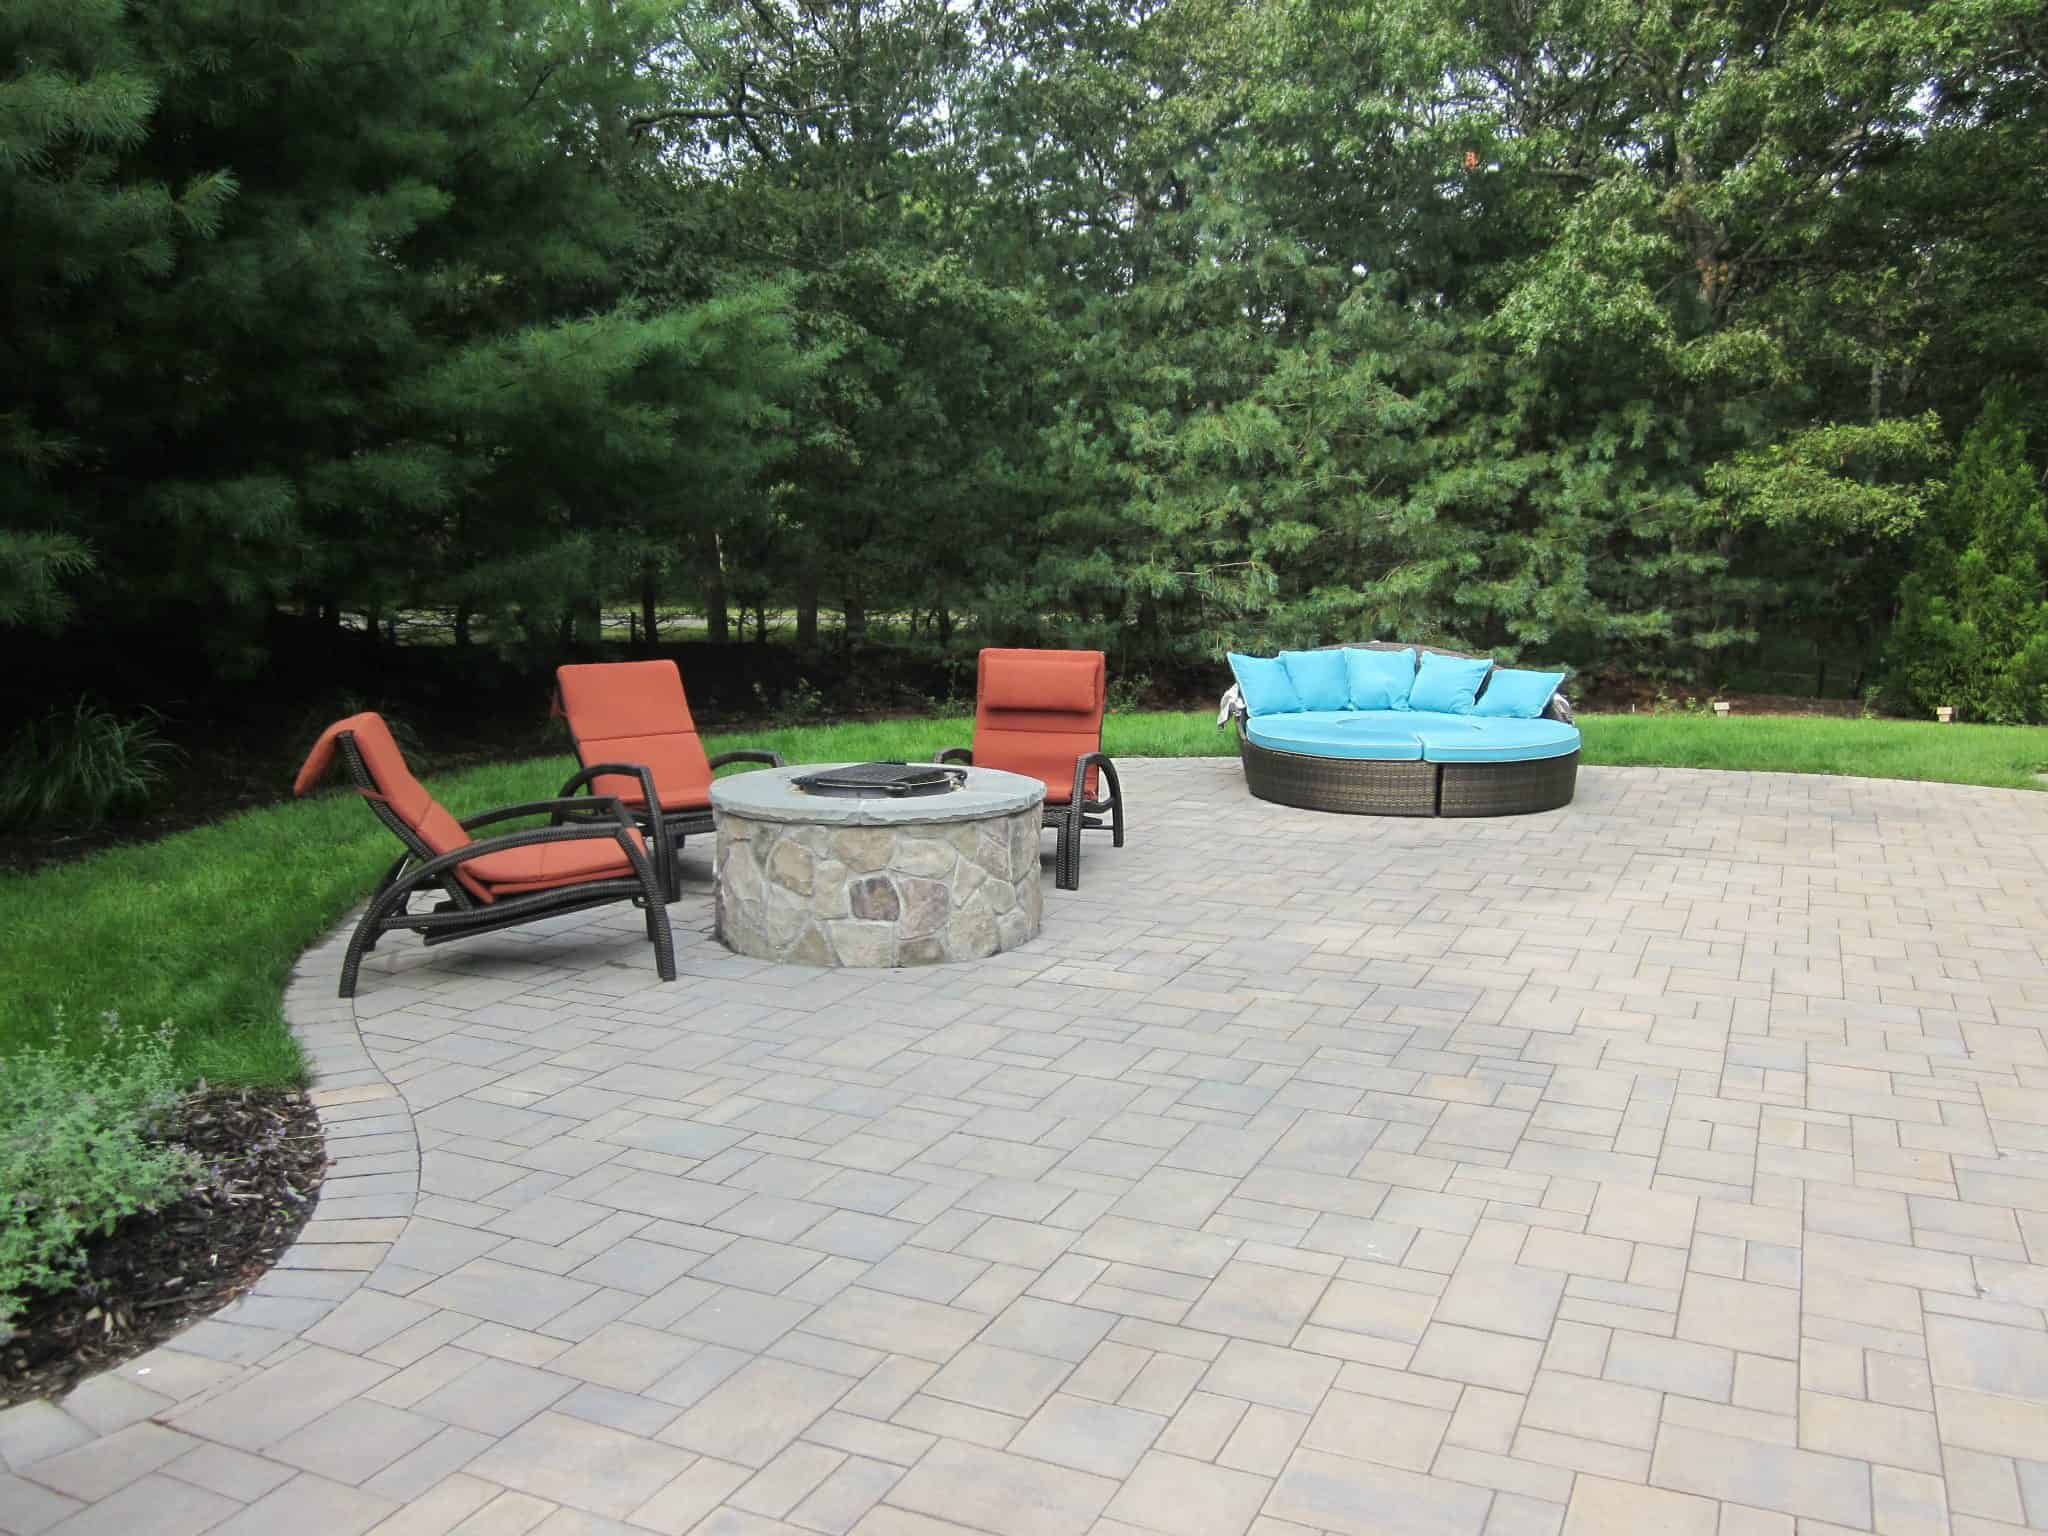 Wood burning Fire Pit veneered in Dressed Field Stone - Bucks County - Hampton Bays, Long Island NY